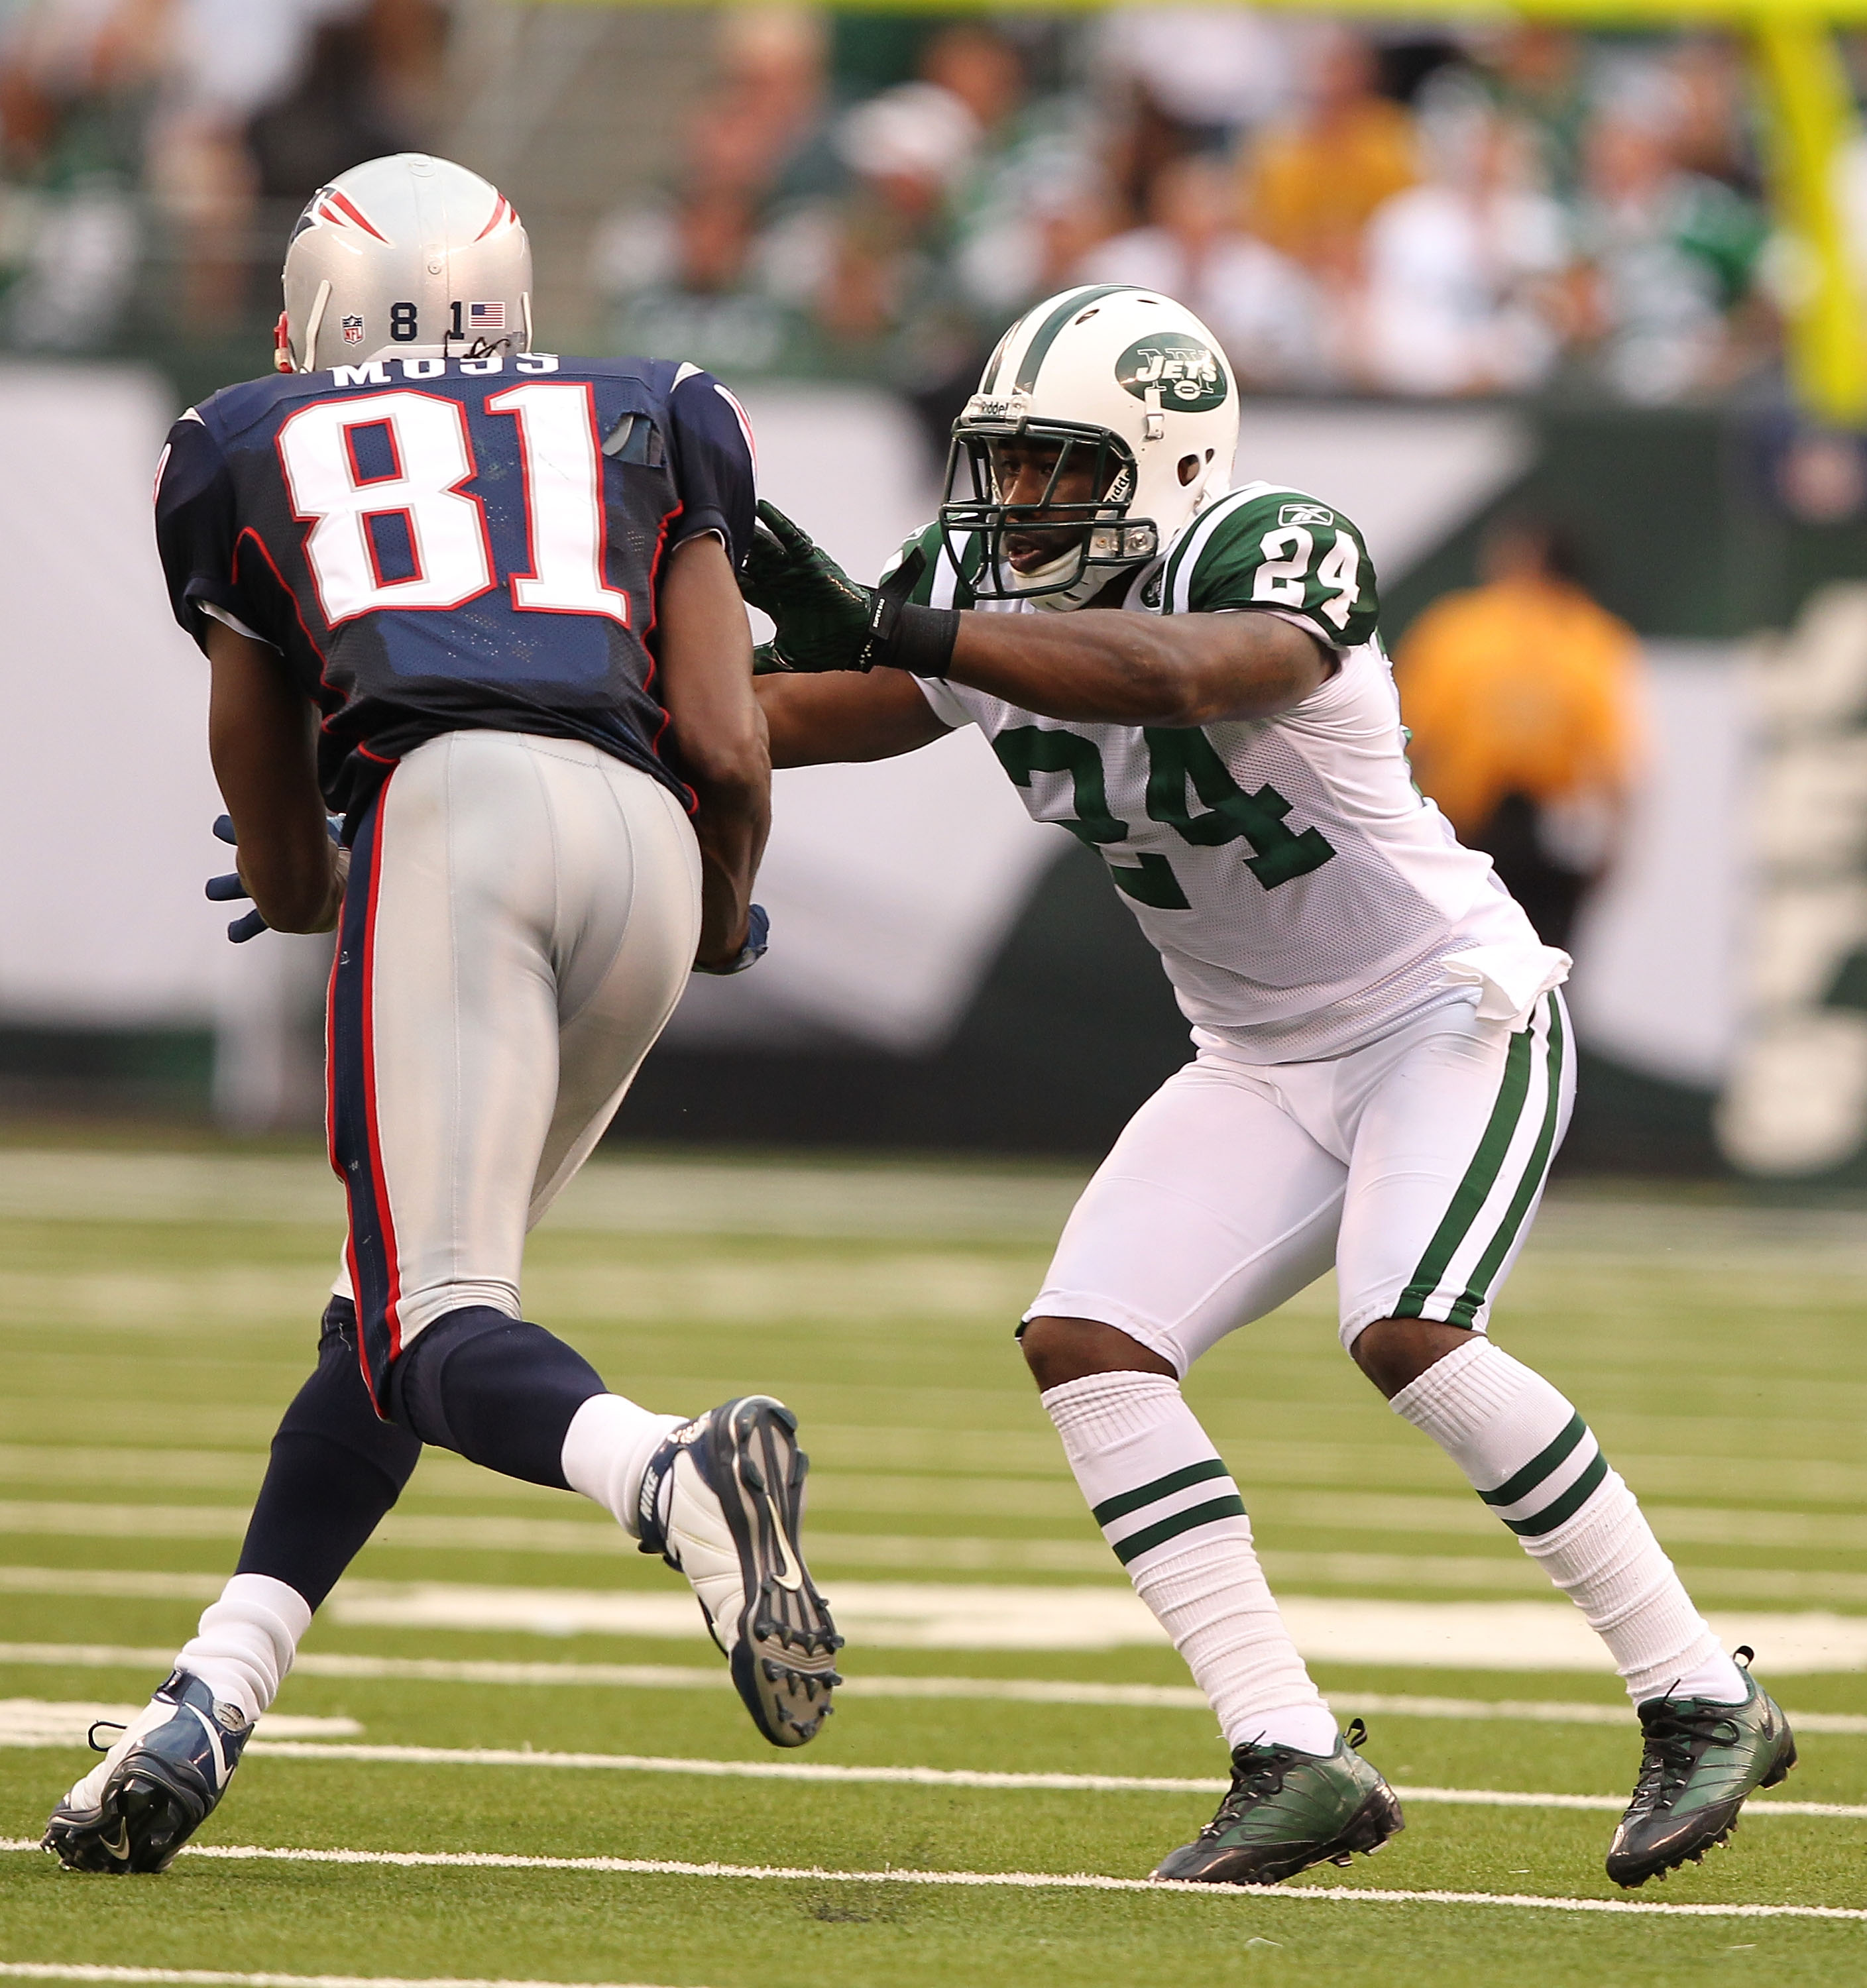 EAST RUTHERFORD, NJ - SEPTEMBER 19:  Darrelle Revis #24 of the New York Jets defends against Randy Moss #81 of the New England Patriots during their  game on September 19, 2010 at the New Meadowlands Stadium  in East Rutherford, New Jersey.  (Photo by Al